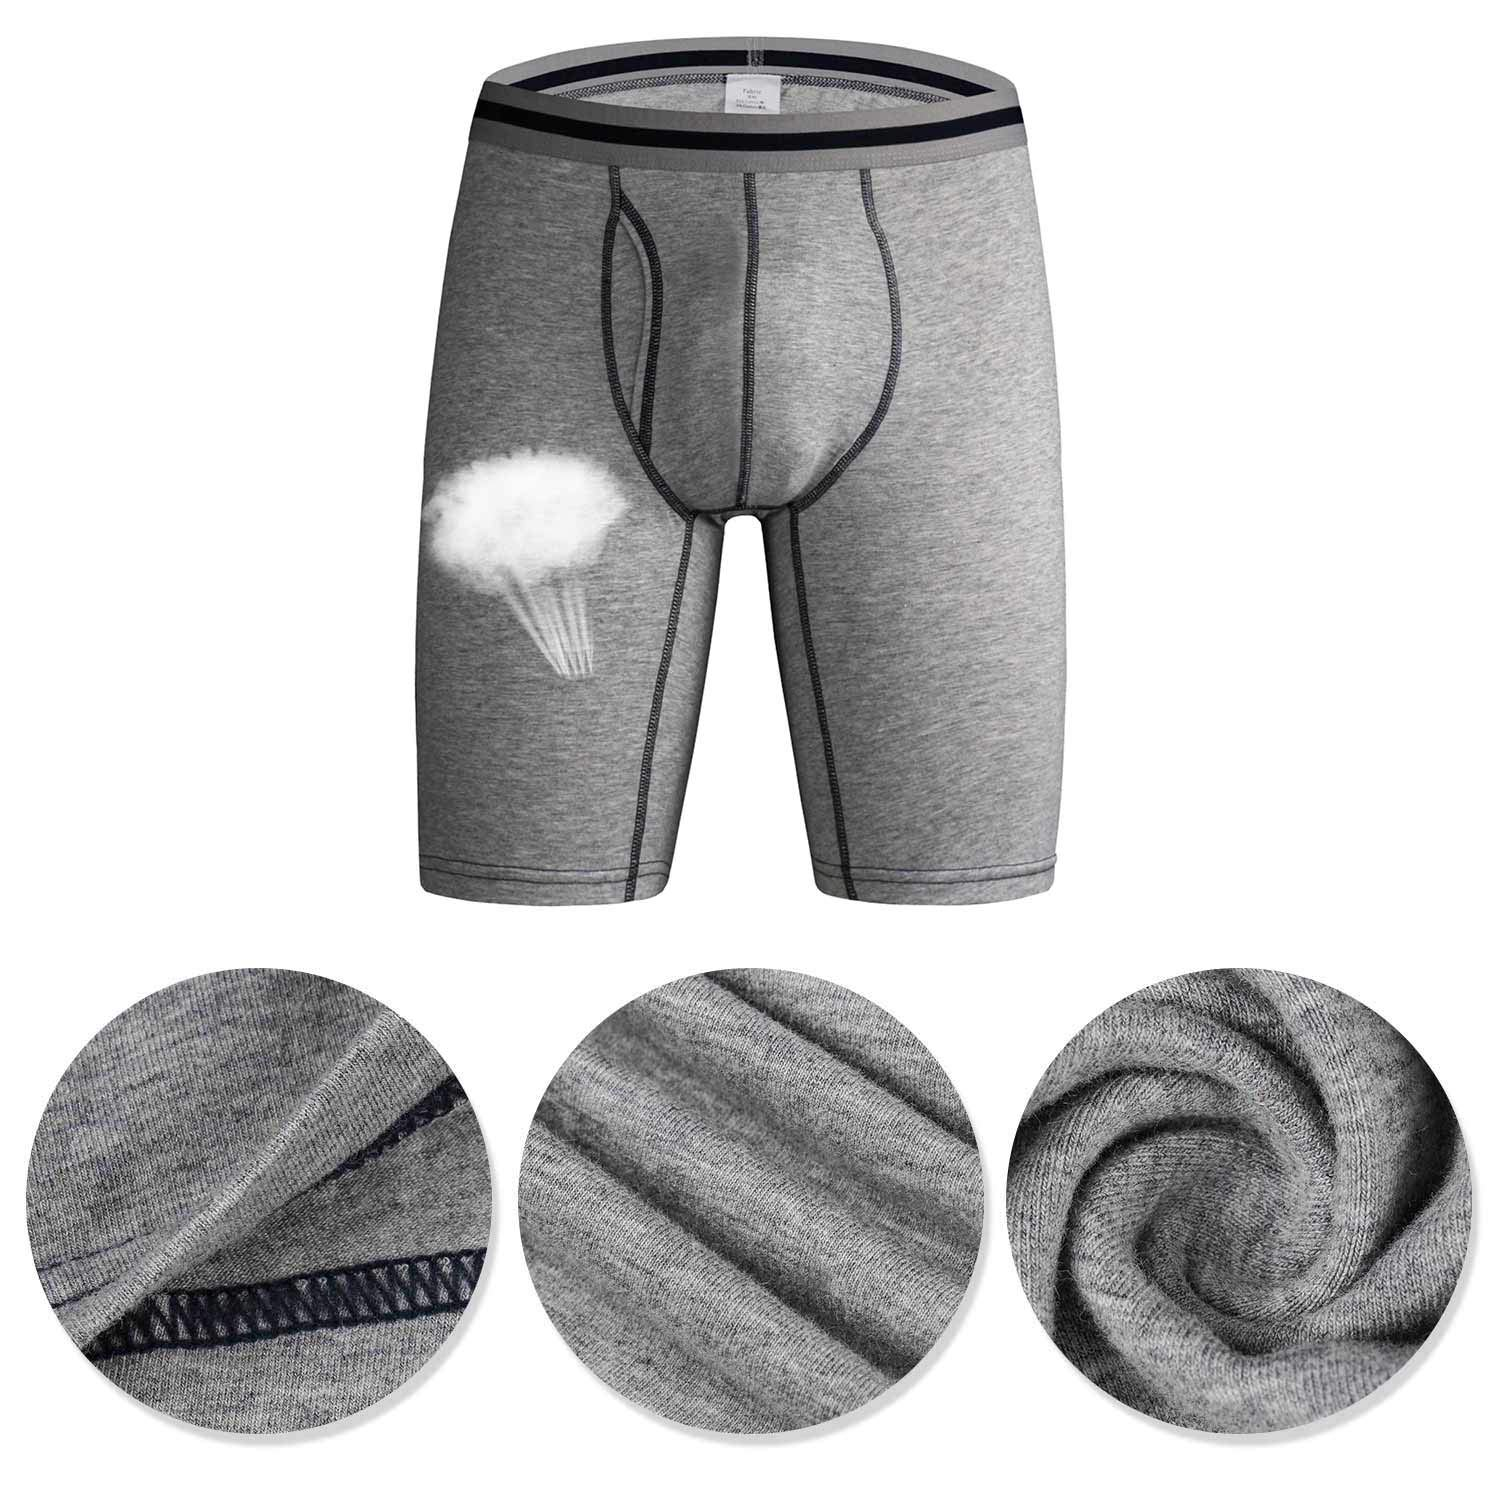 Tuopuda Mens Boxers Briefs Micro Modal Stretch Shorts Trunks Sports Underpants Pack of 3 /& 4